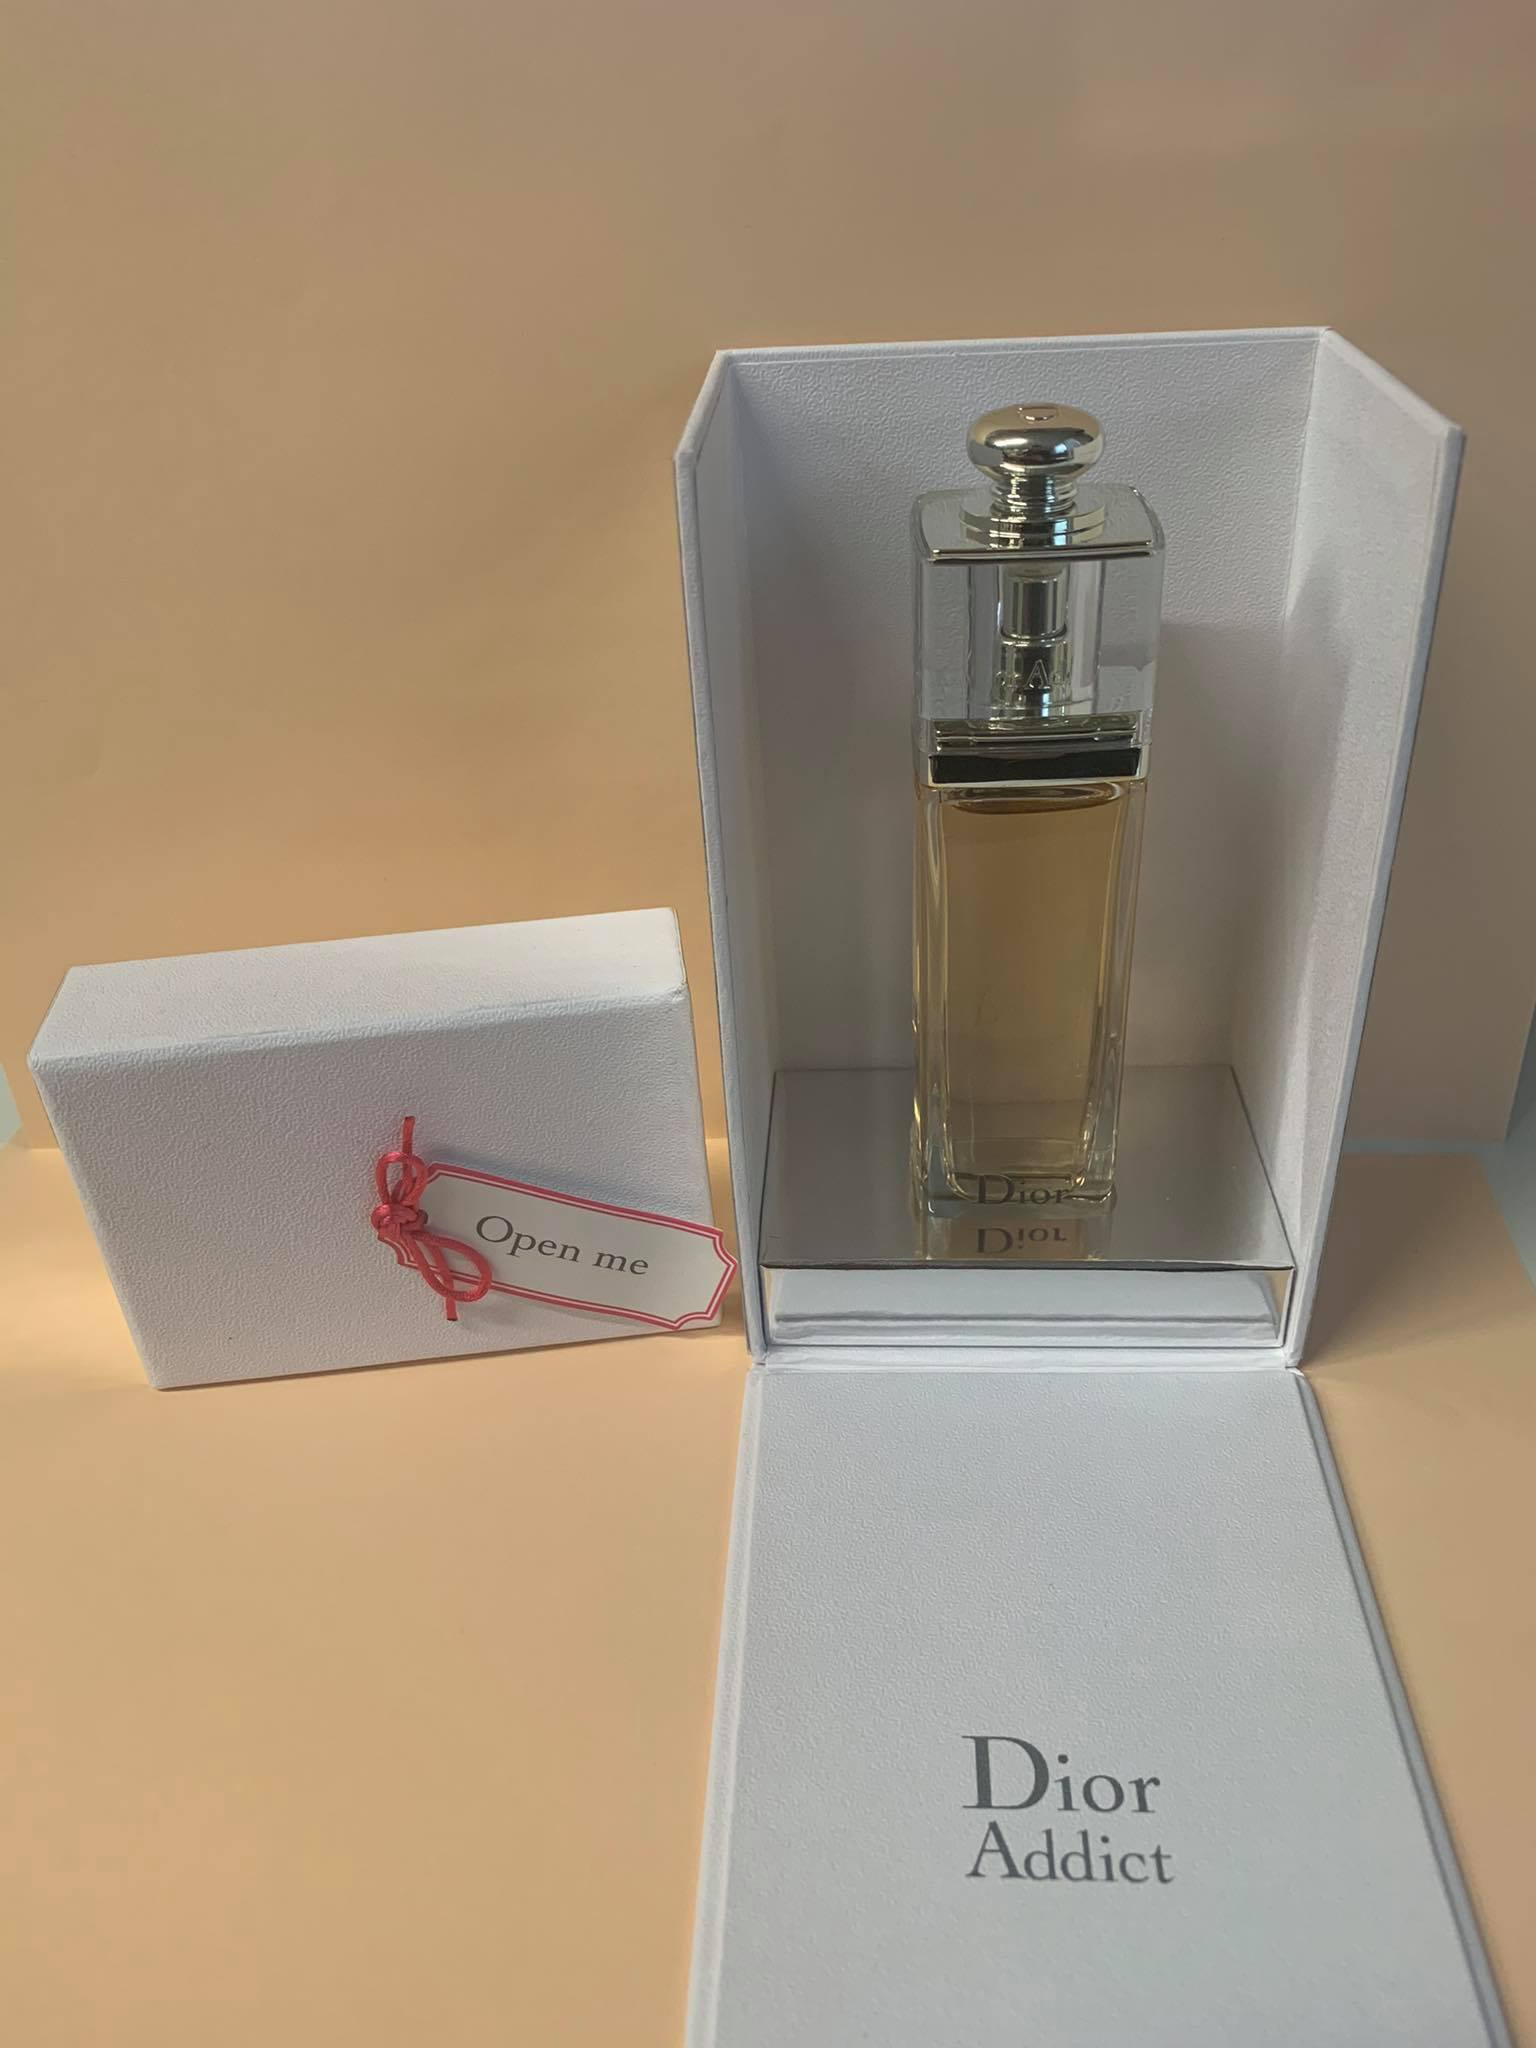 Christian Dior Addict, edt 50ml - Luxury gift package